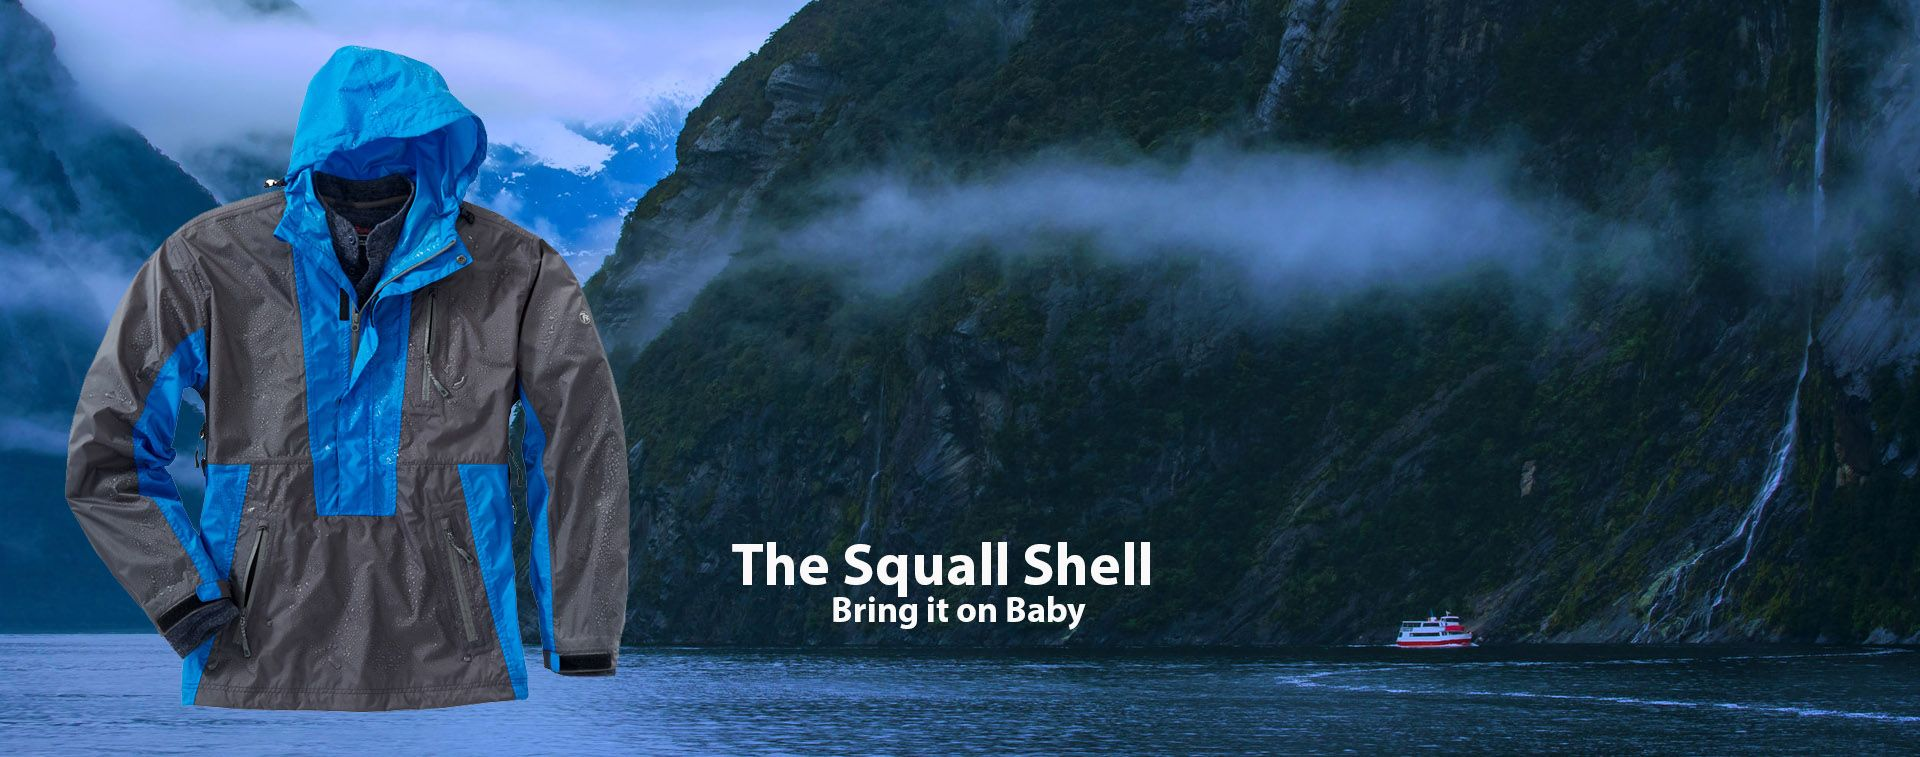 The Squall Shell